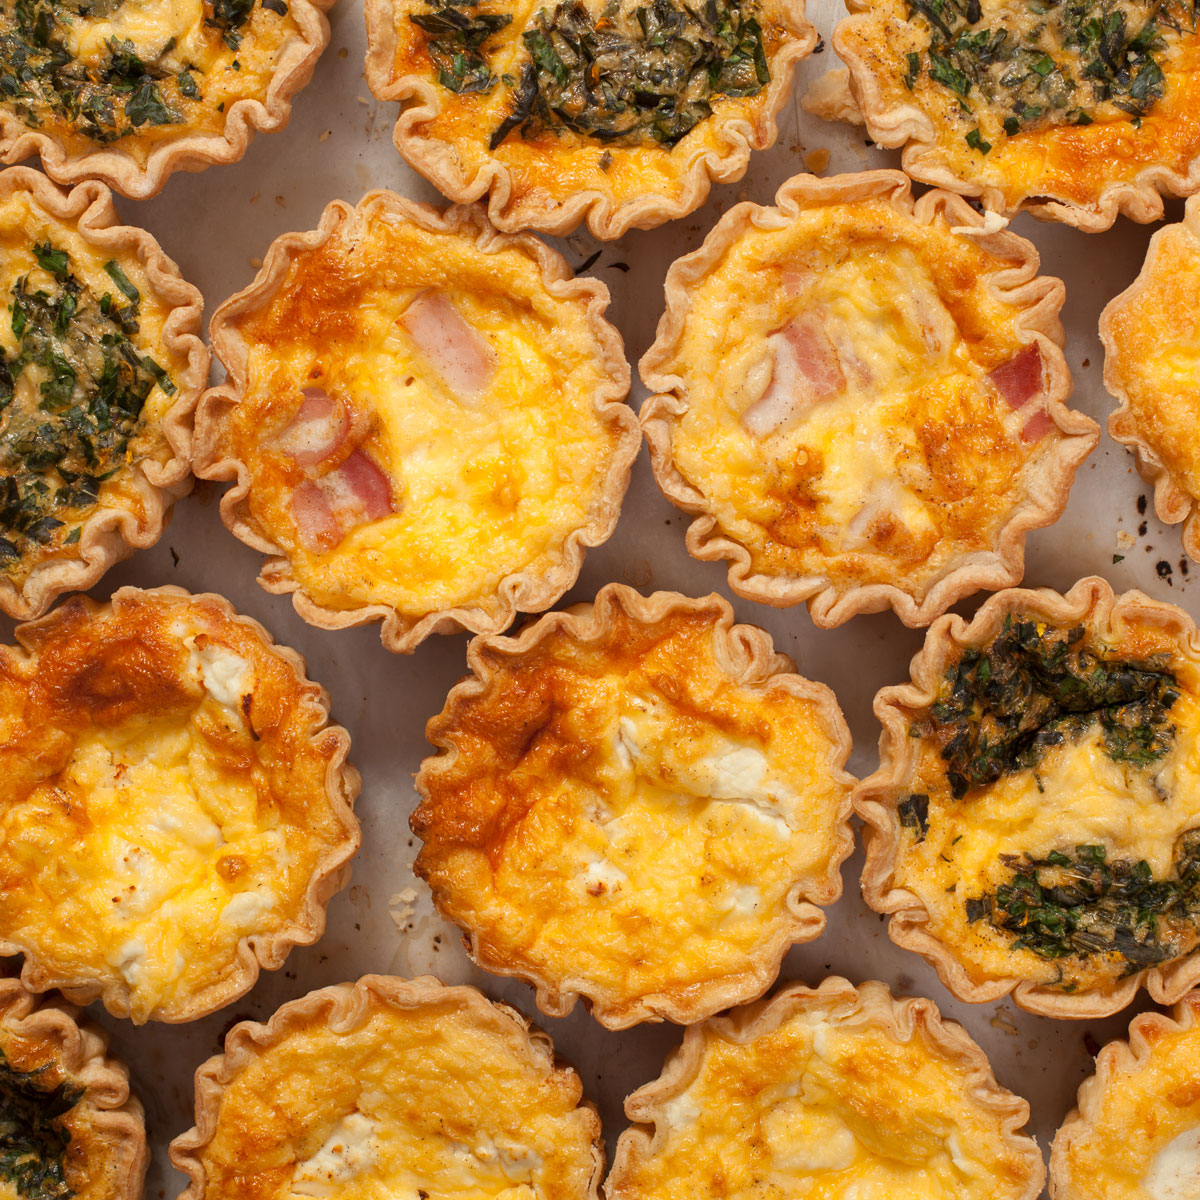 Blackstar_271Quiches.jpg